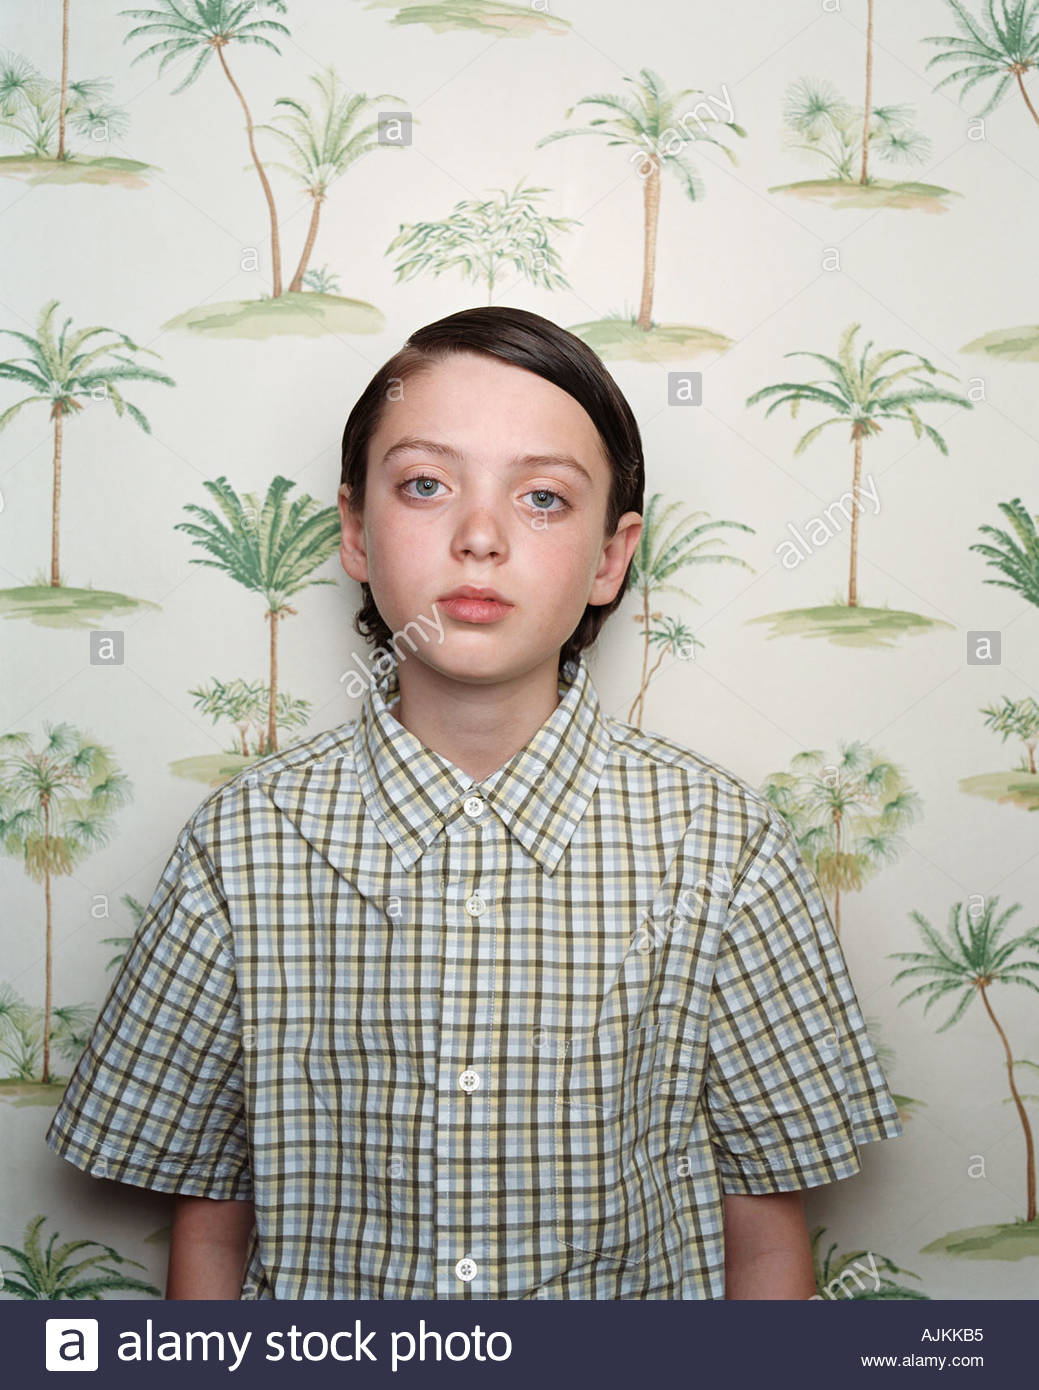 Boy in a checked shirt - Stock Image